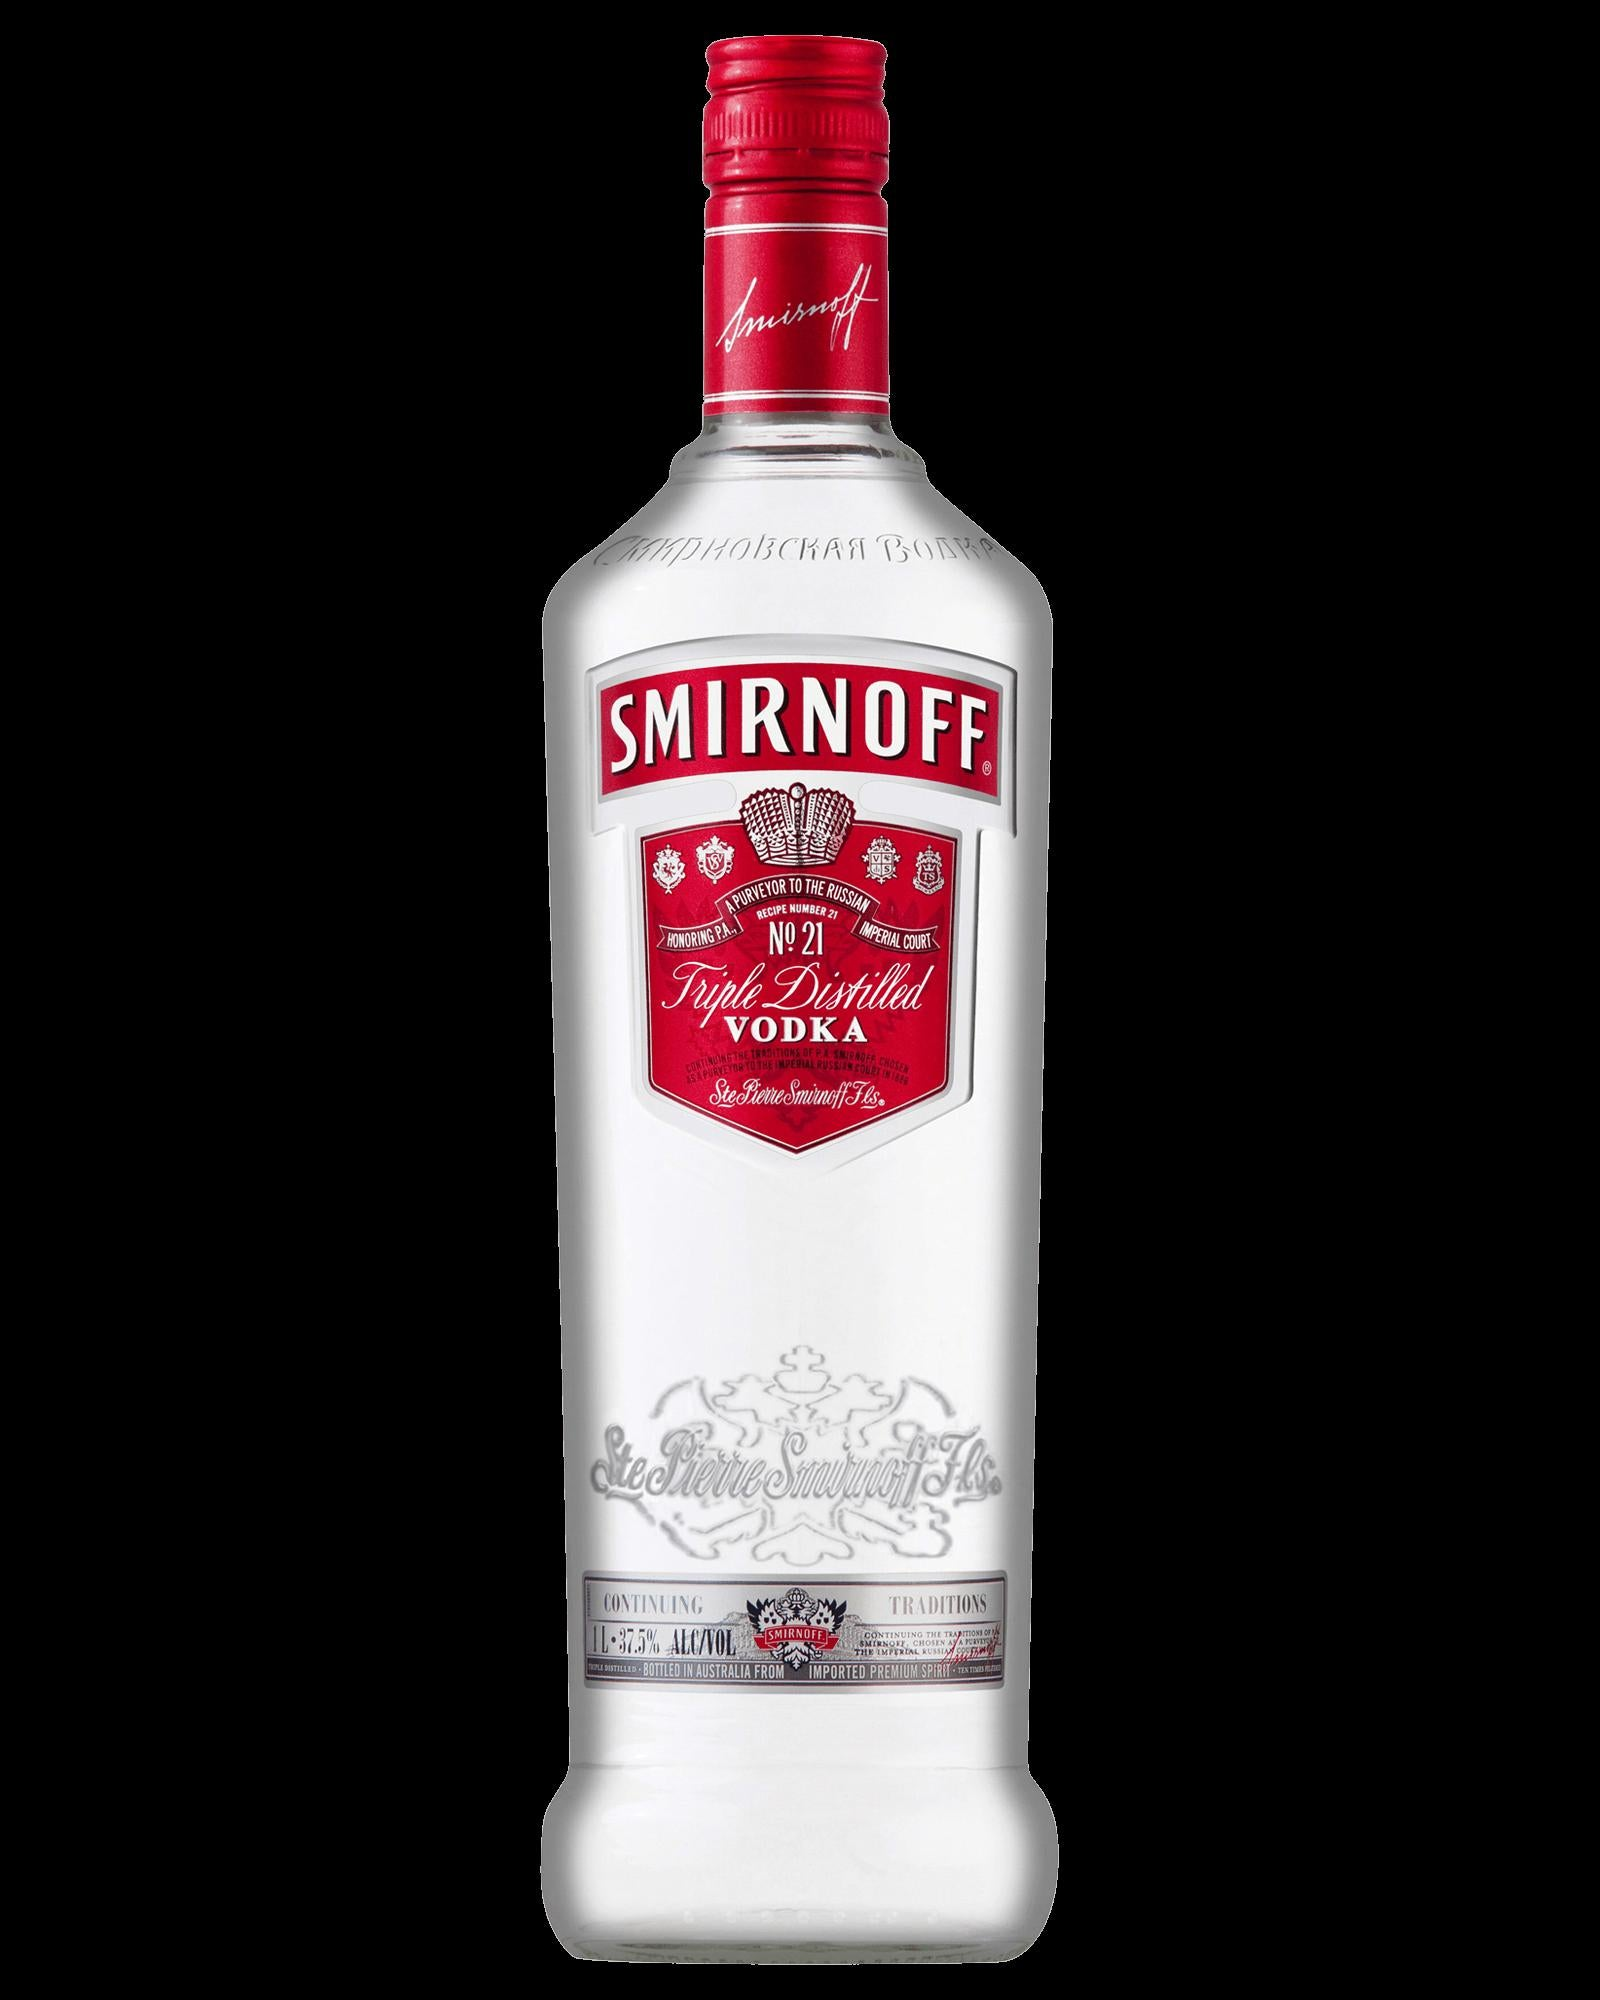 stl>Smimoff Vodka - 750ml